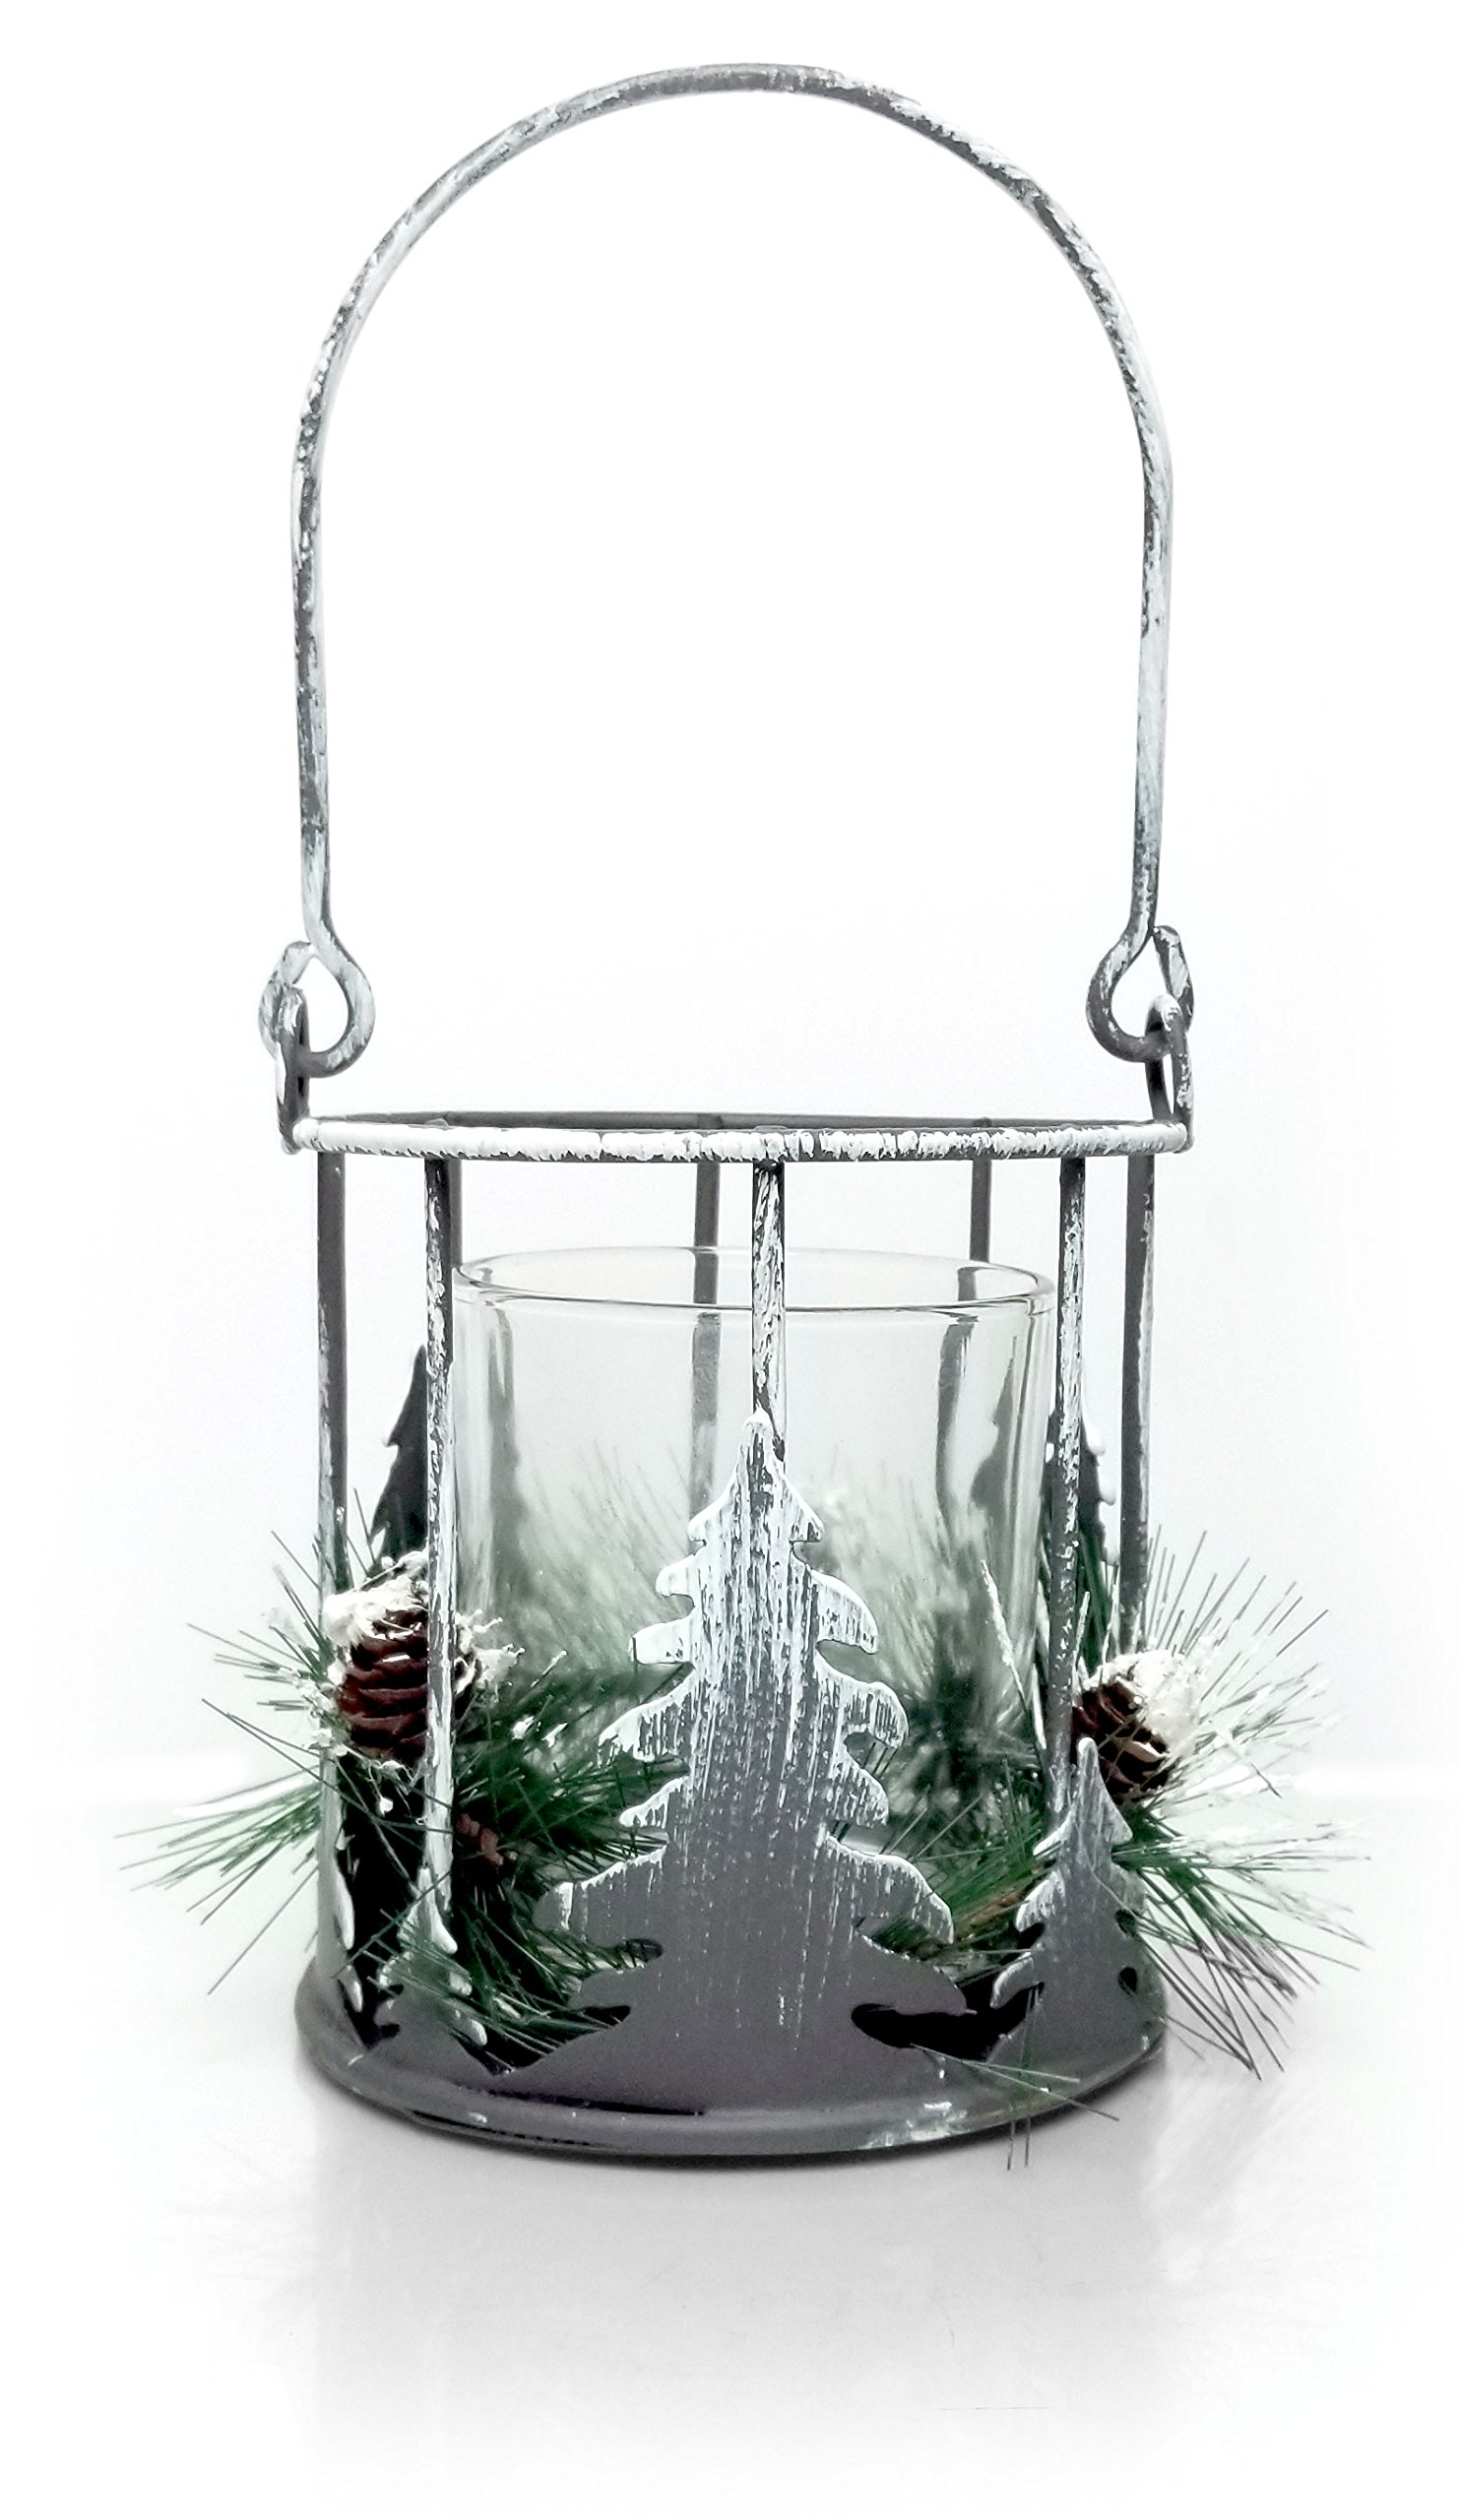 BANBERRY DESIGNS Christmas Rustic - Metal Candleholder with Xmas Trees and Greenery - Glass Insert Votive Holder Included